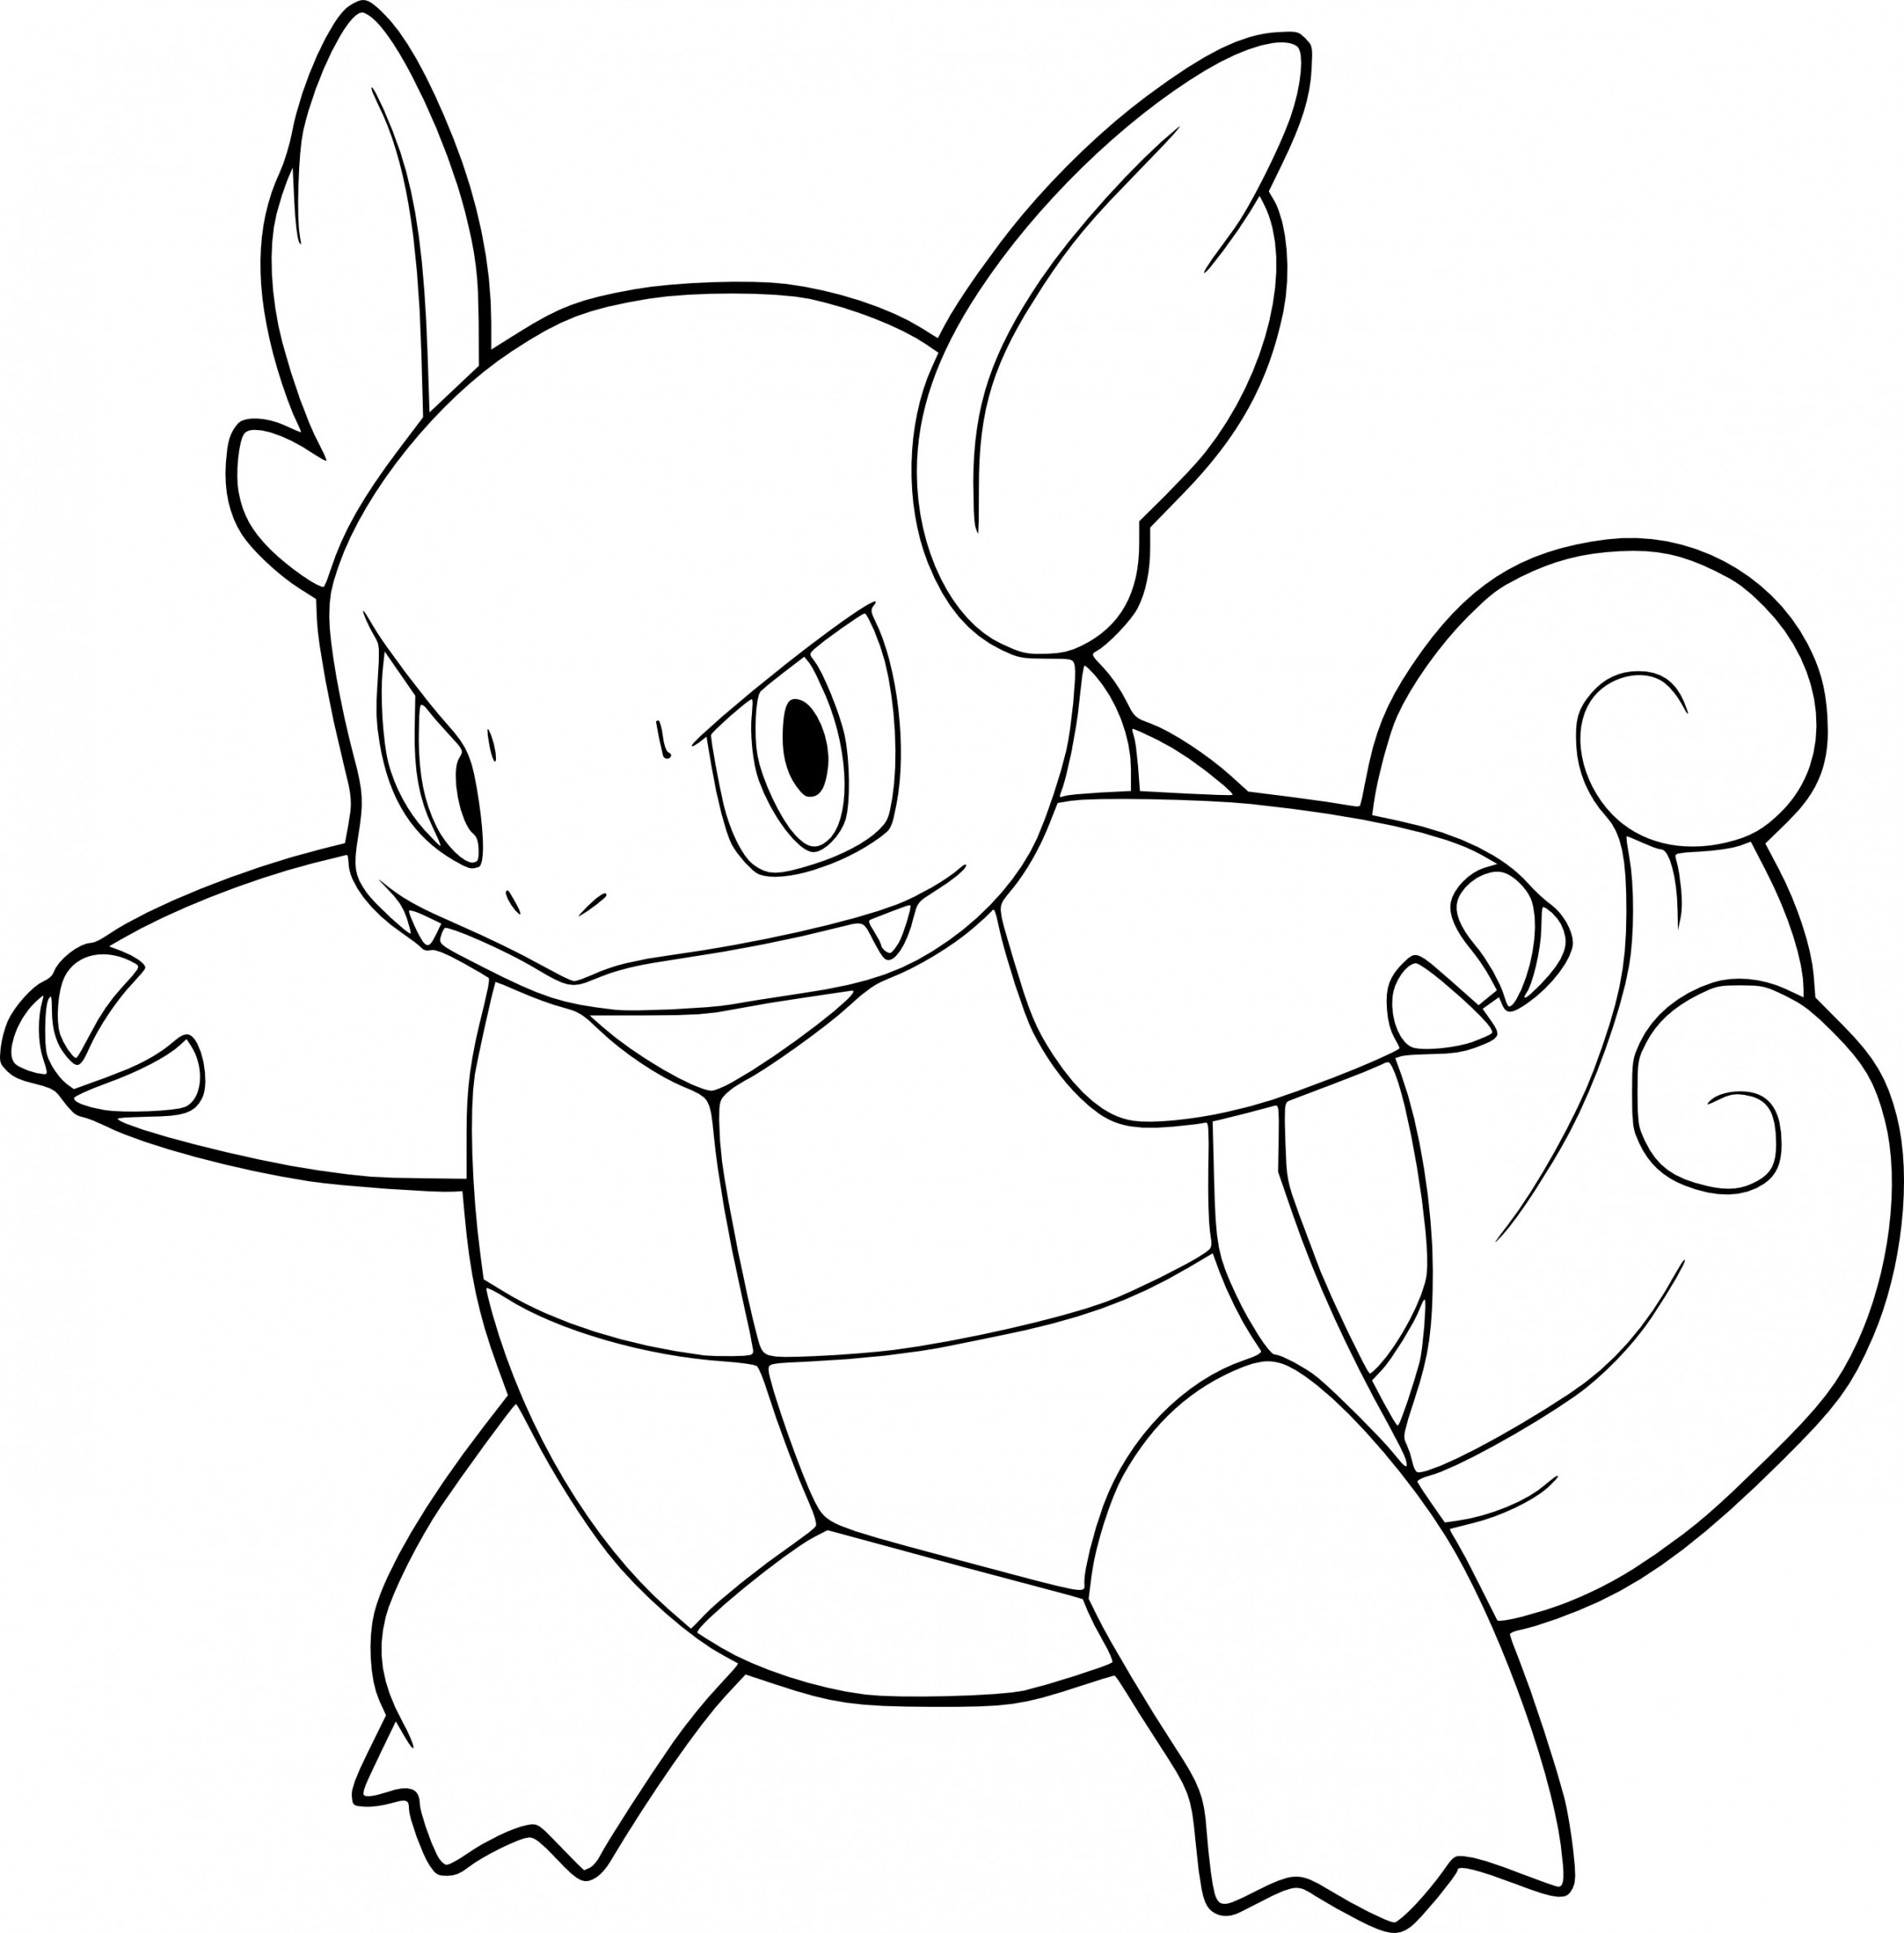 2342x2378 Pokemon Wartortle Coloring Pages Collections Of Pokemon Wartortle